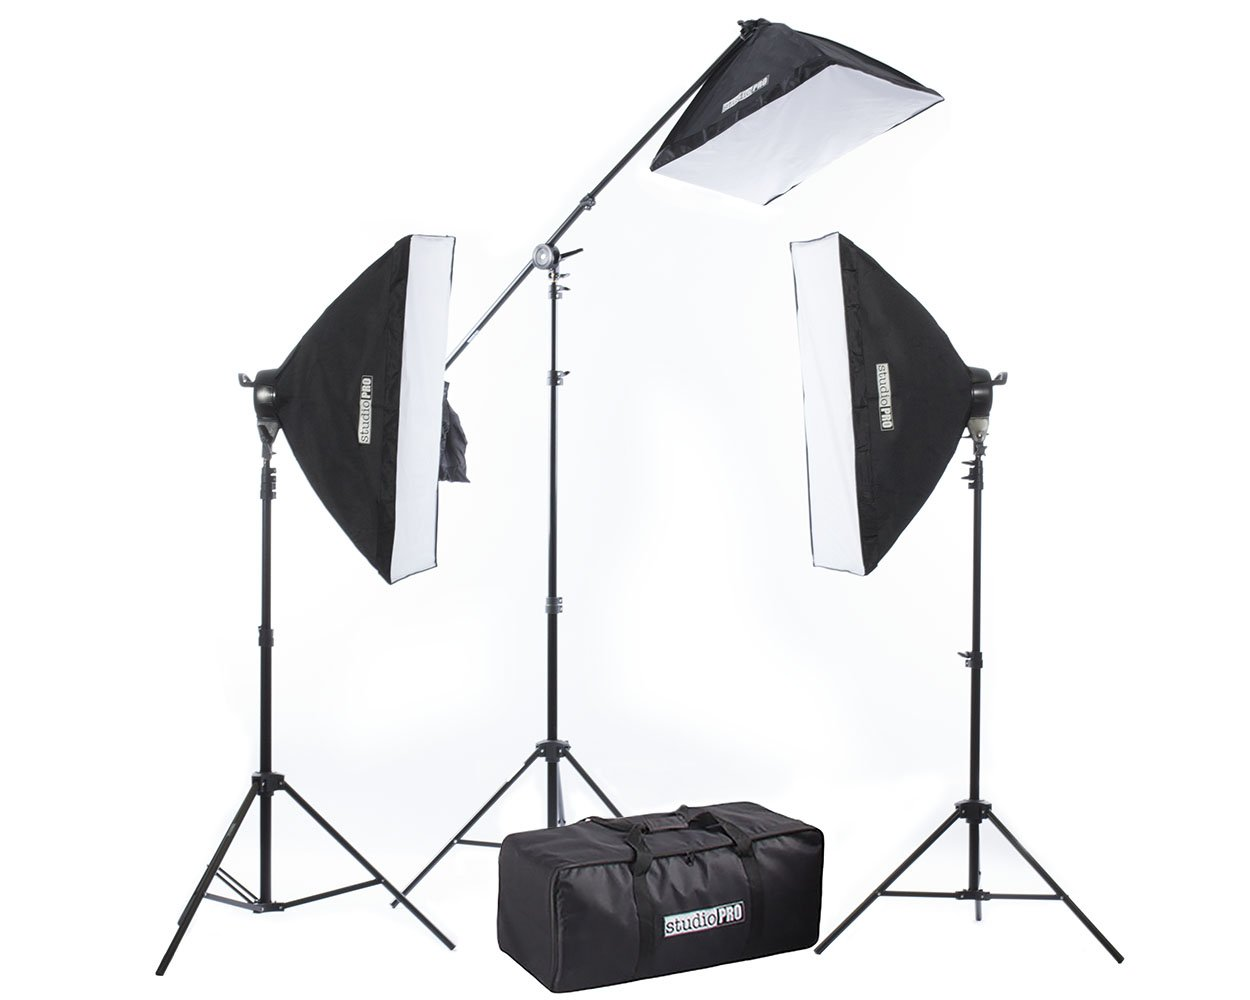 Fovitec 3x 20''x28'' Softbox Lighting Kit w/ 2500 W Total Output - [Classic][Includes Boom, Stands, Softboxes, Socket Heads, 11x 45W Bulbs]